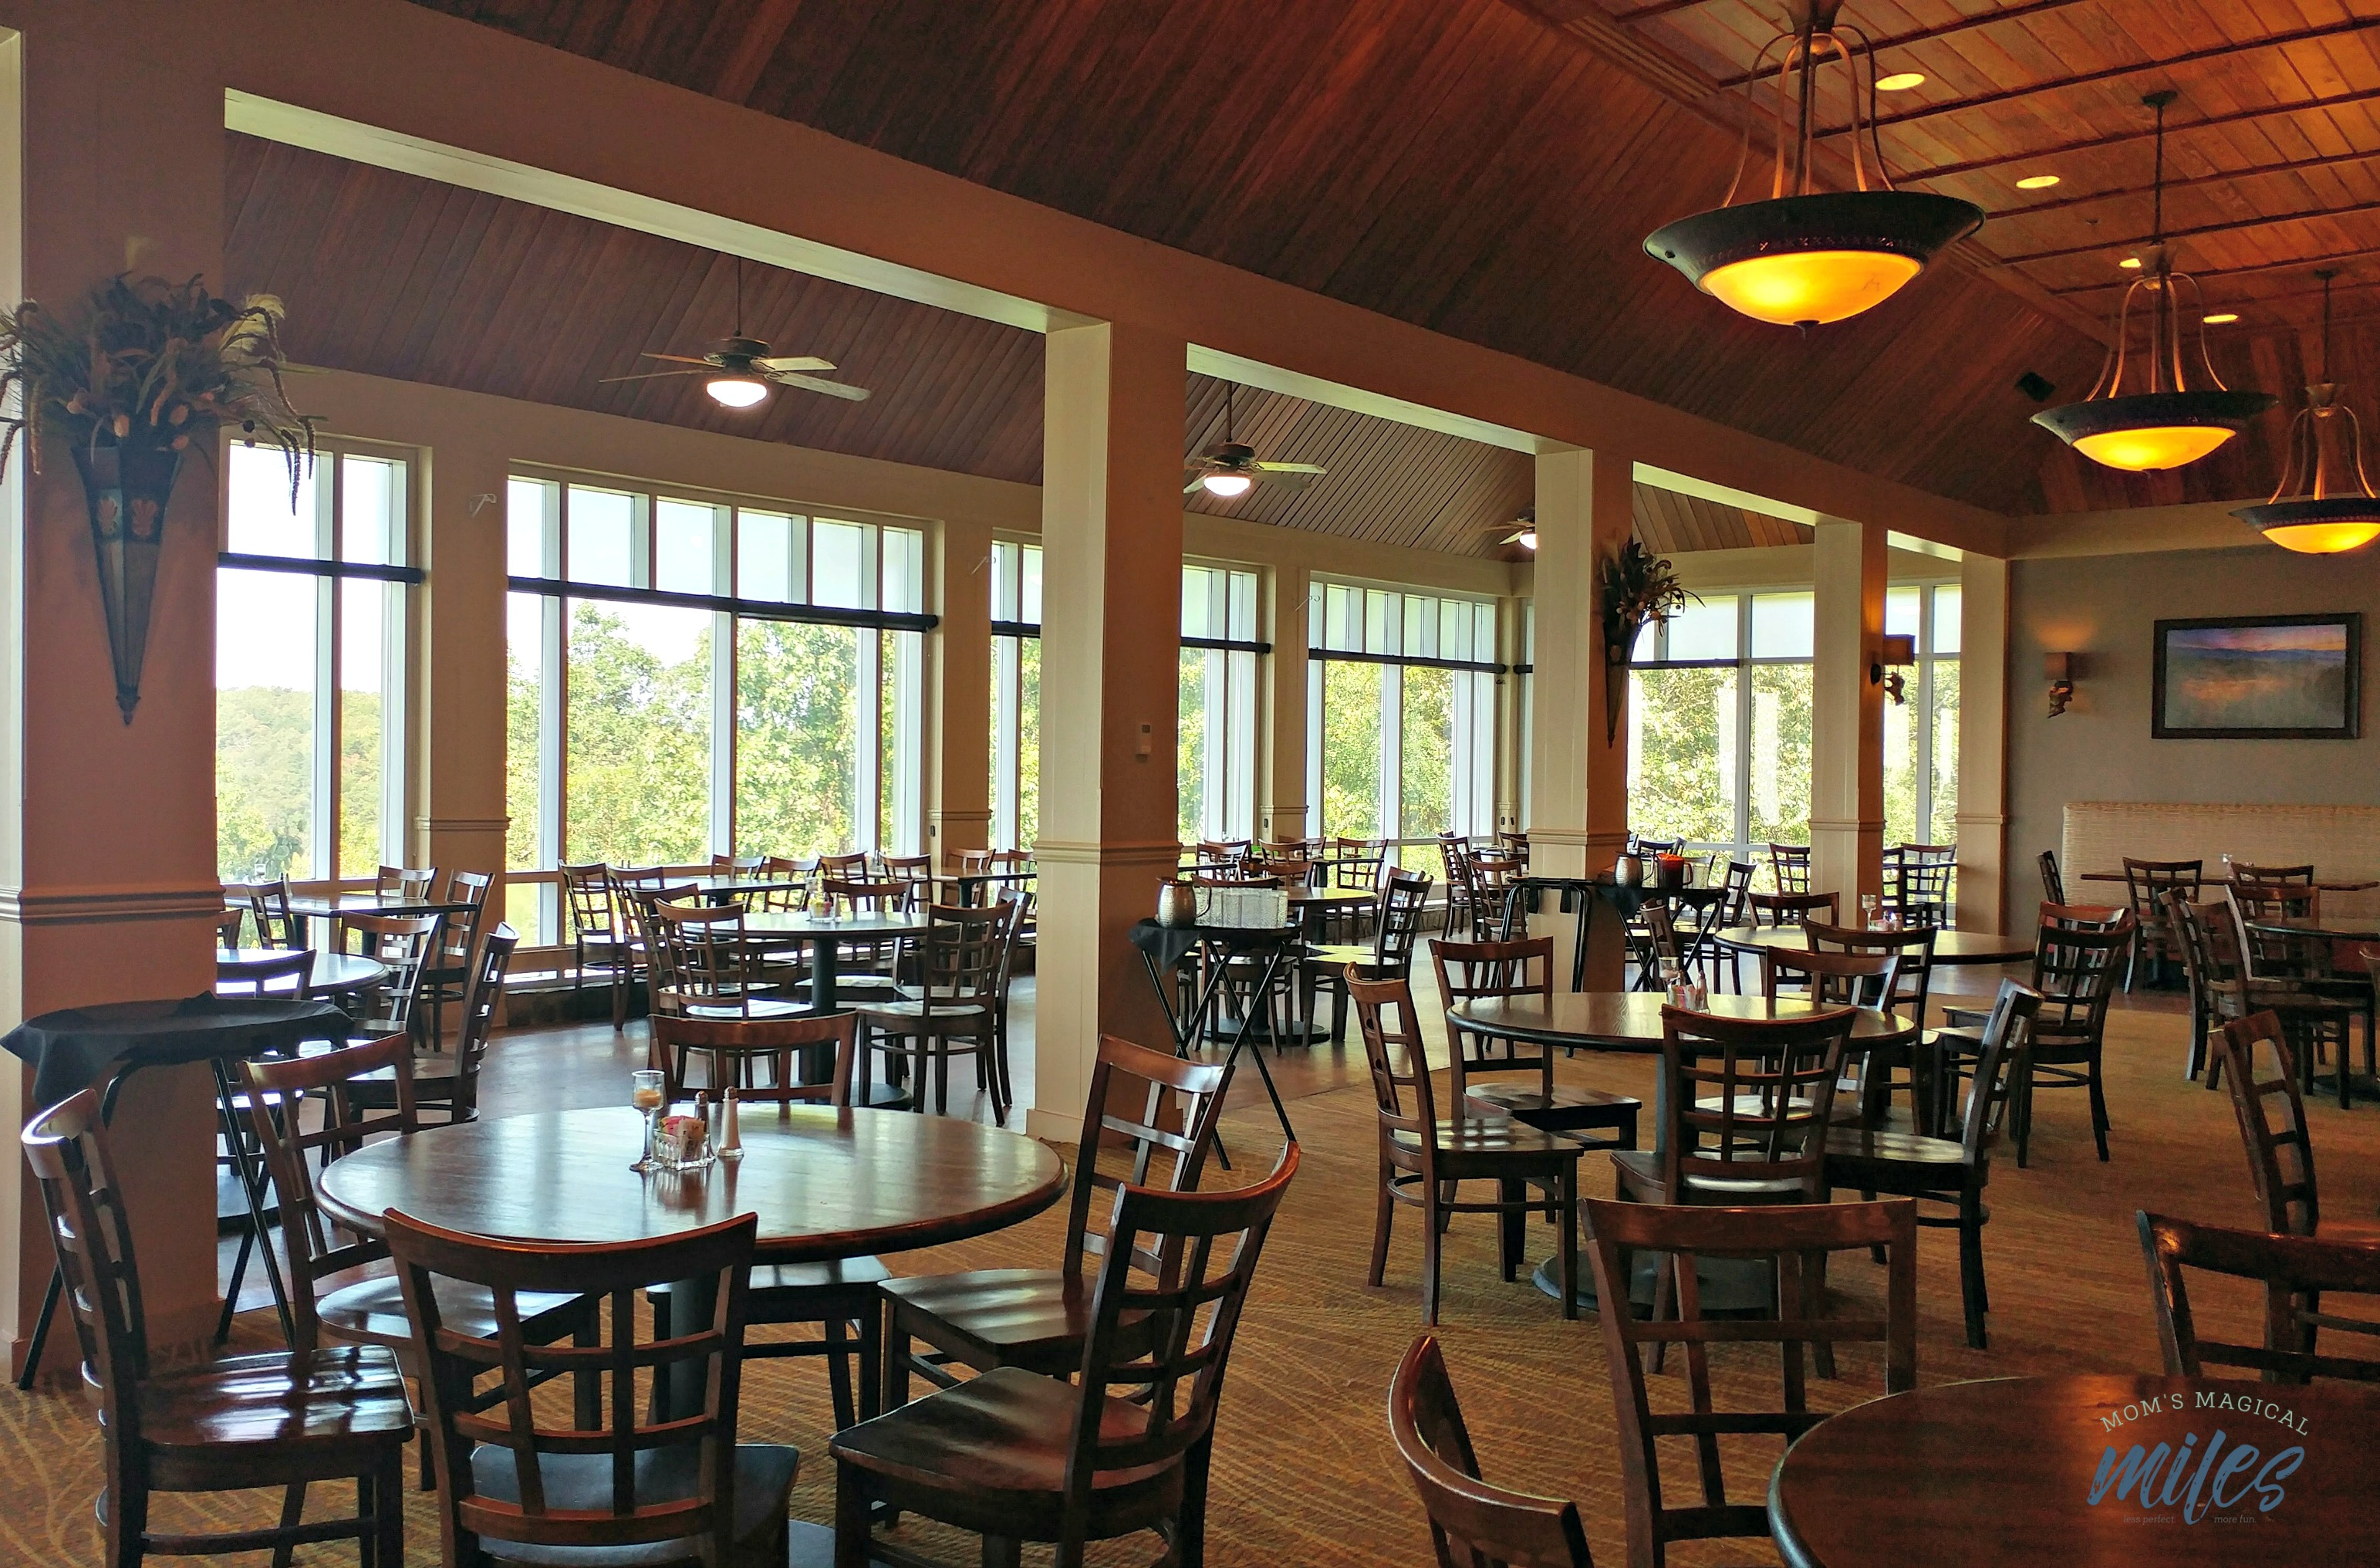 The newly remodeled dining room at the Amicalola Falls State Park Lodge is the perfect place to savor the view!